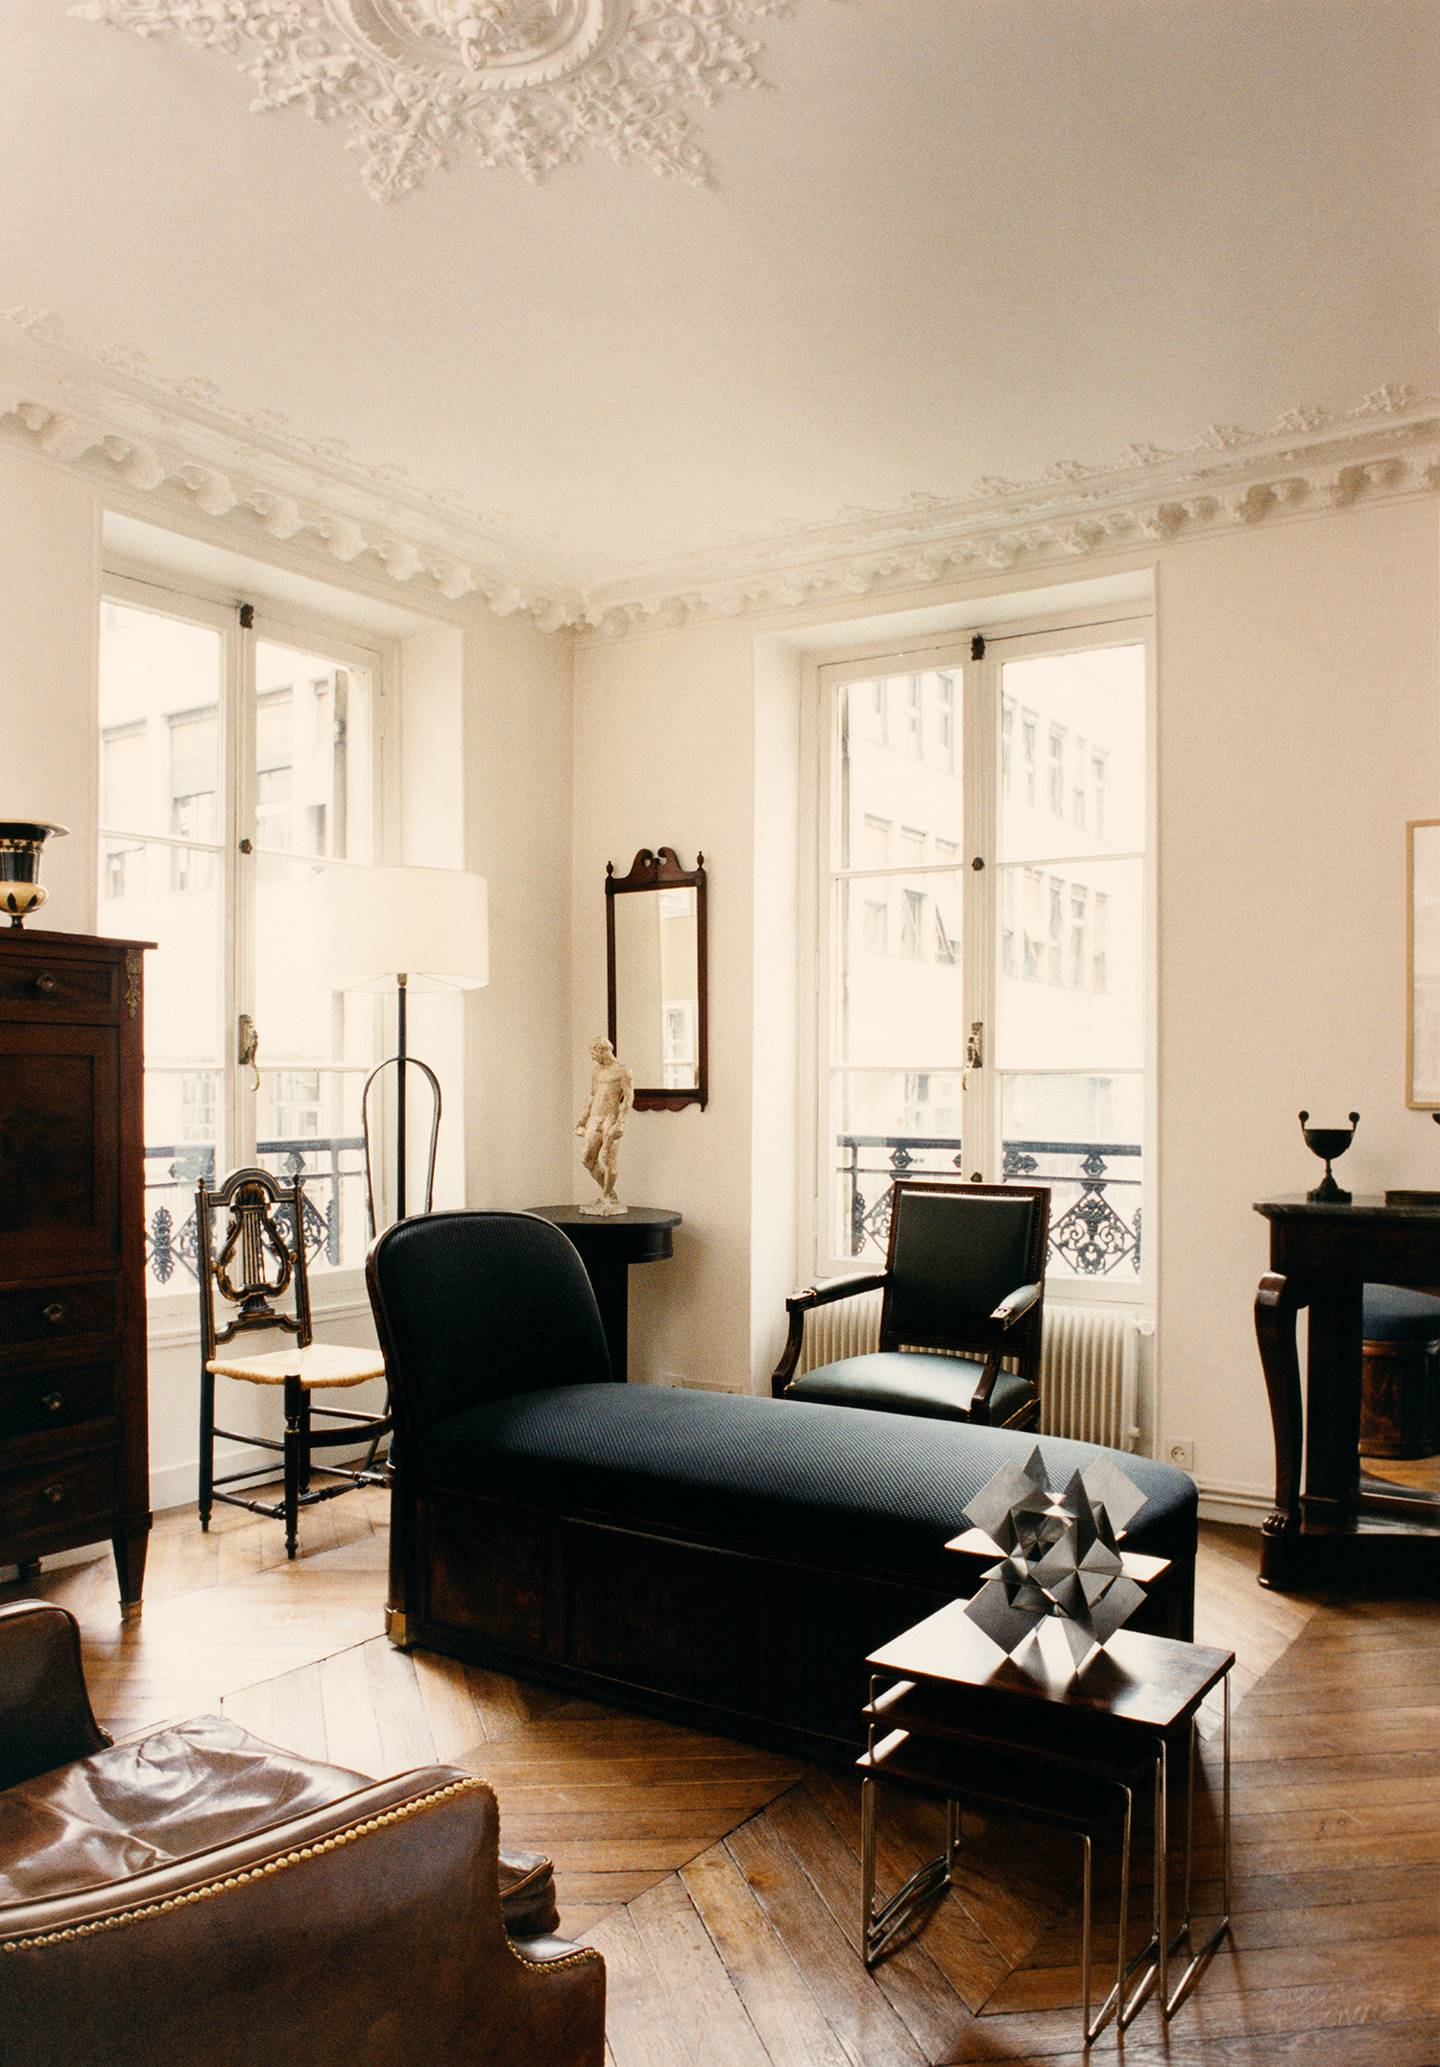 From the archive: fashion designer Andrew Gn's Paris flat (1996)